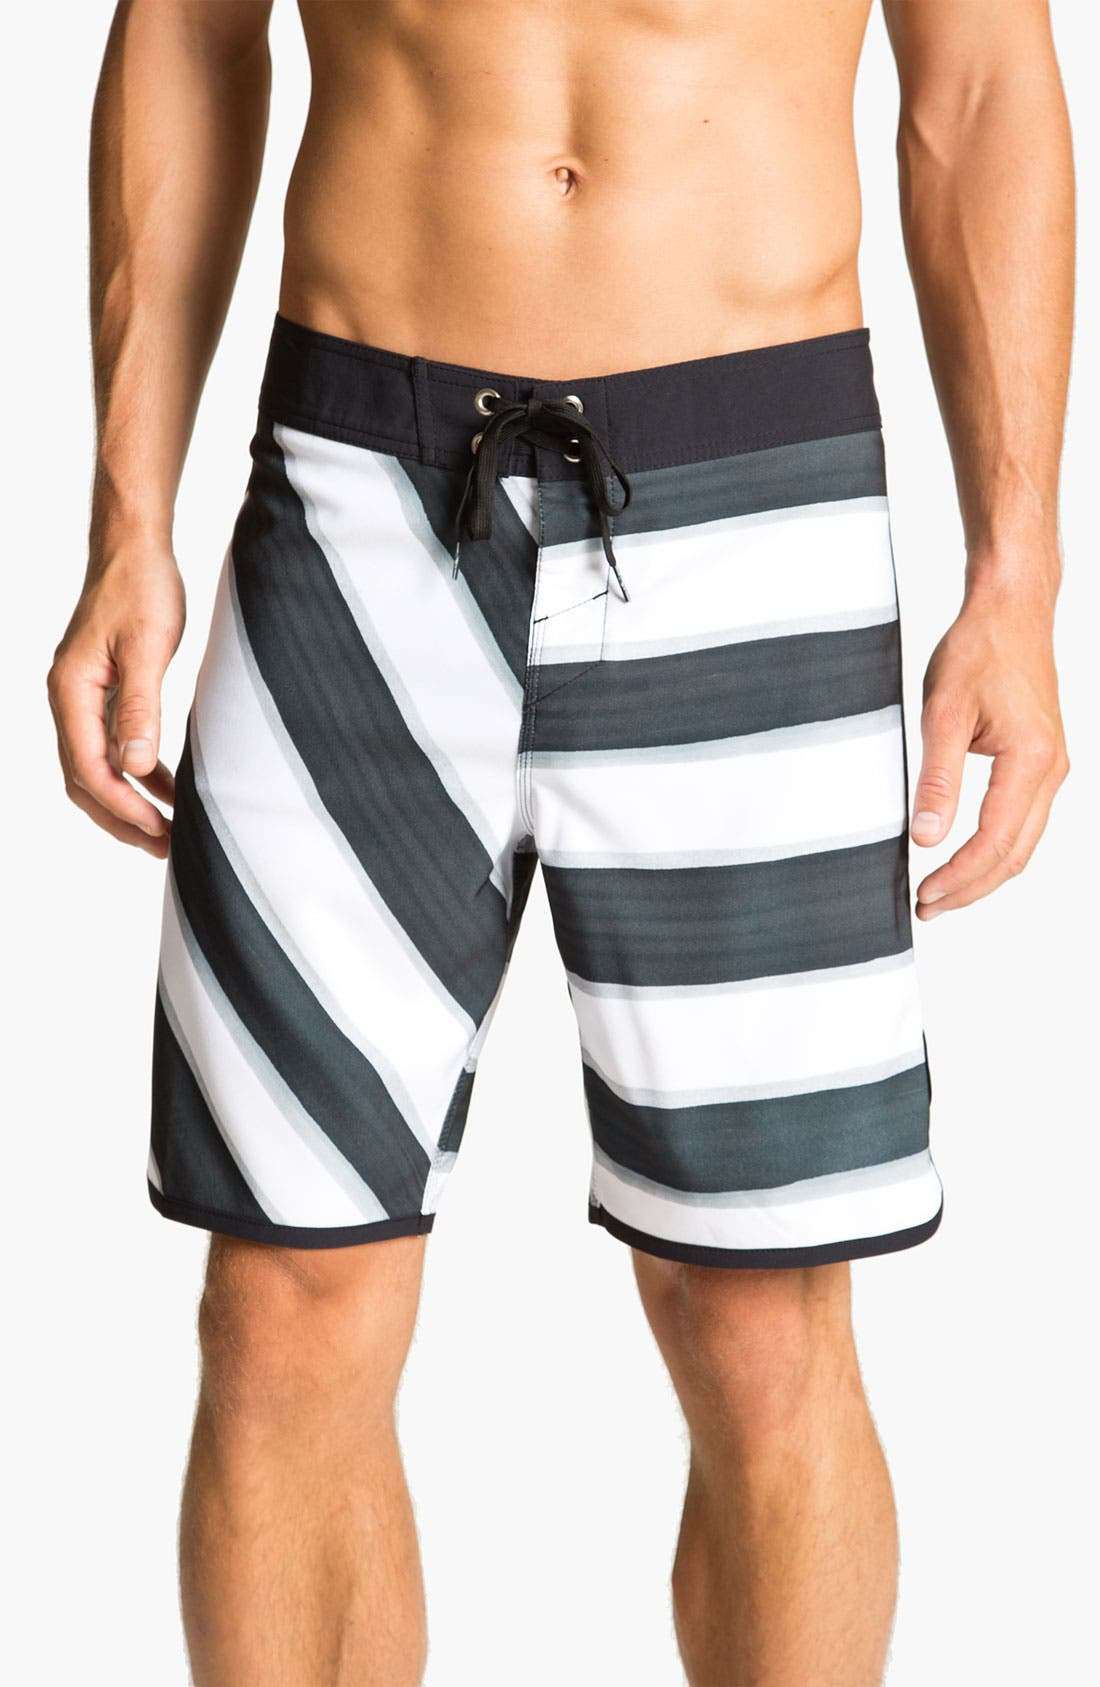 Alternate Image 1 Selected - O'Neill Sportswear 'Break' Board Shorts